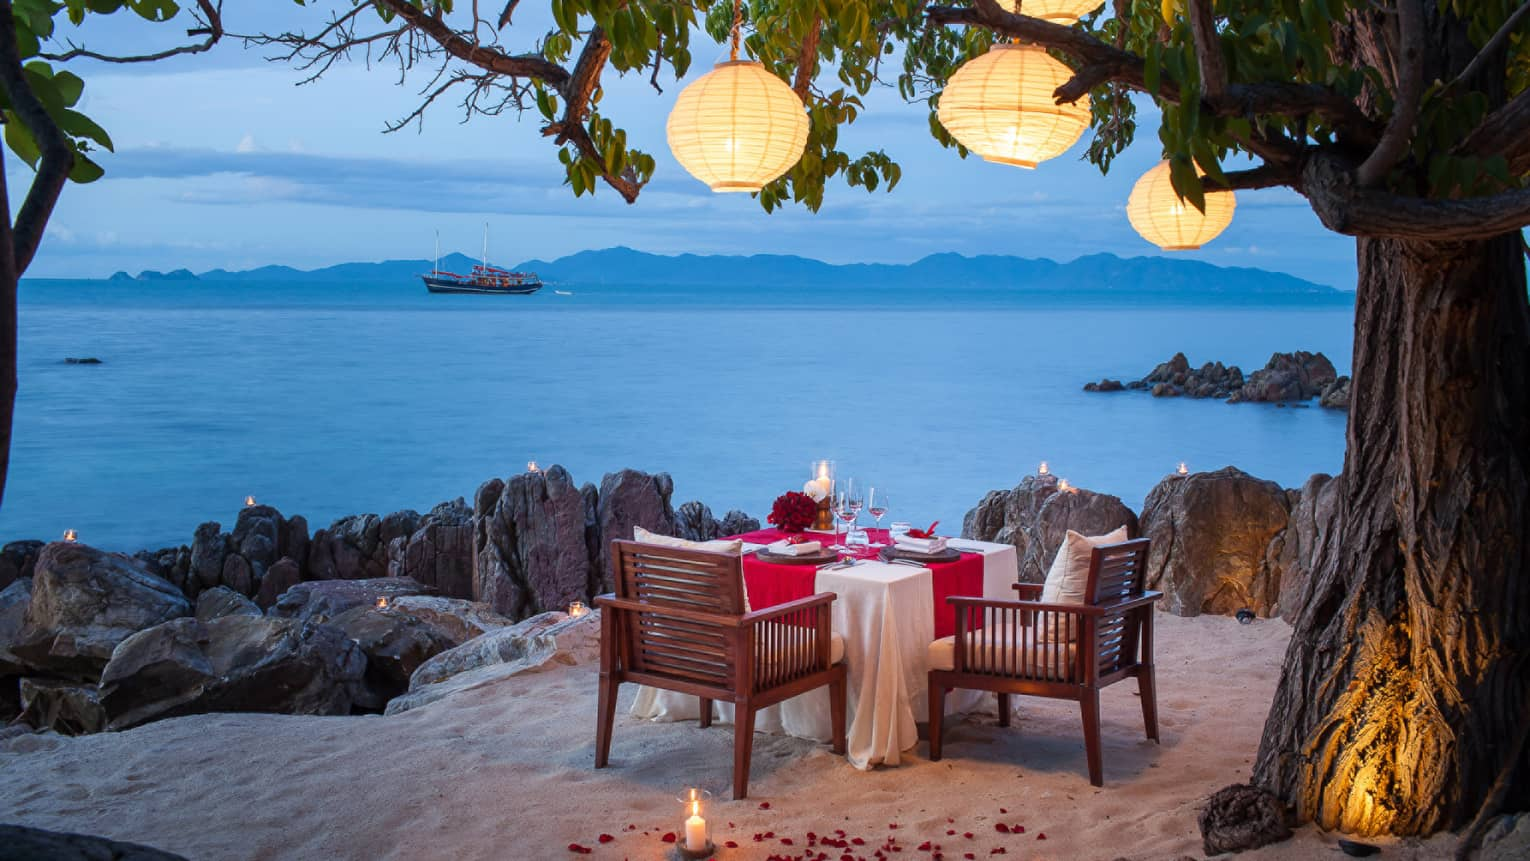 Private dining setting on the beach with a view of the Gulf of Thailand